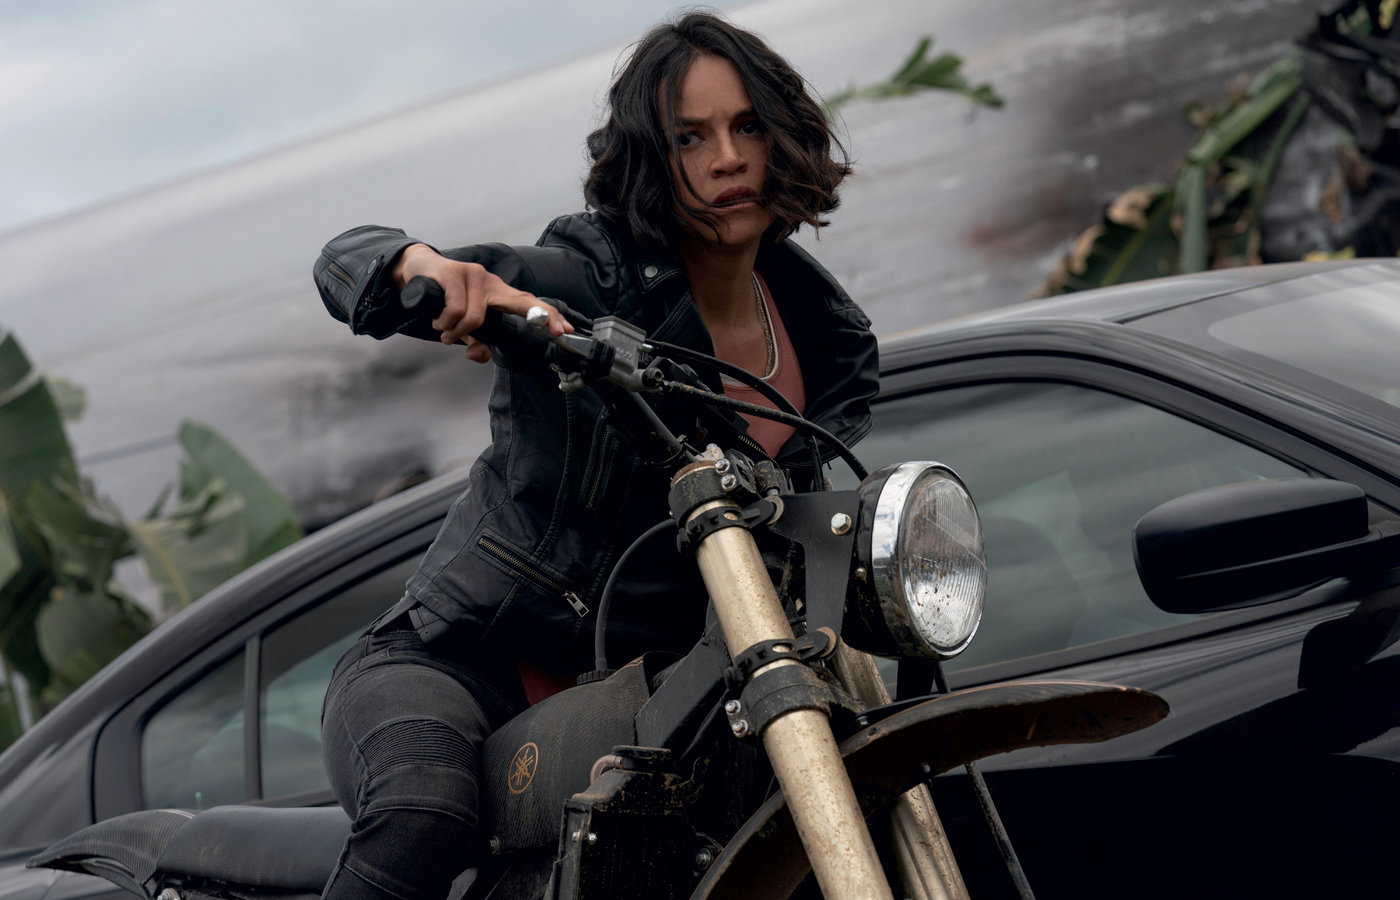 michelle-rodriguez-fast-and-furious-9-2020-movie-5k-oe.jpg